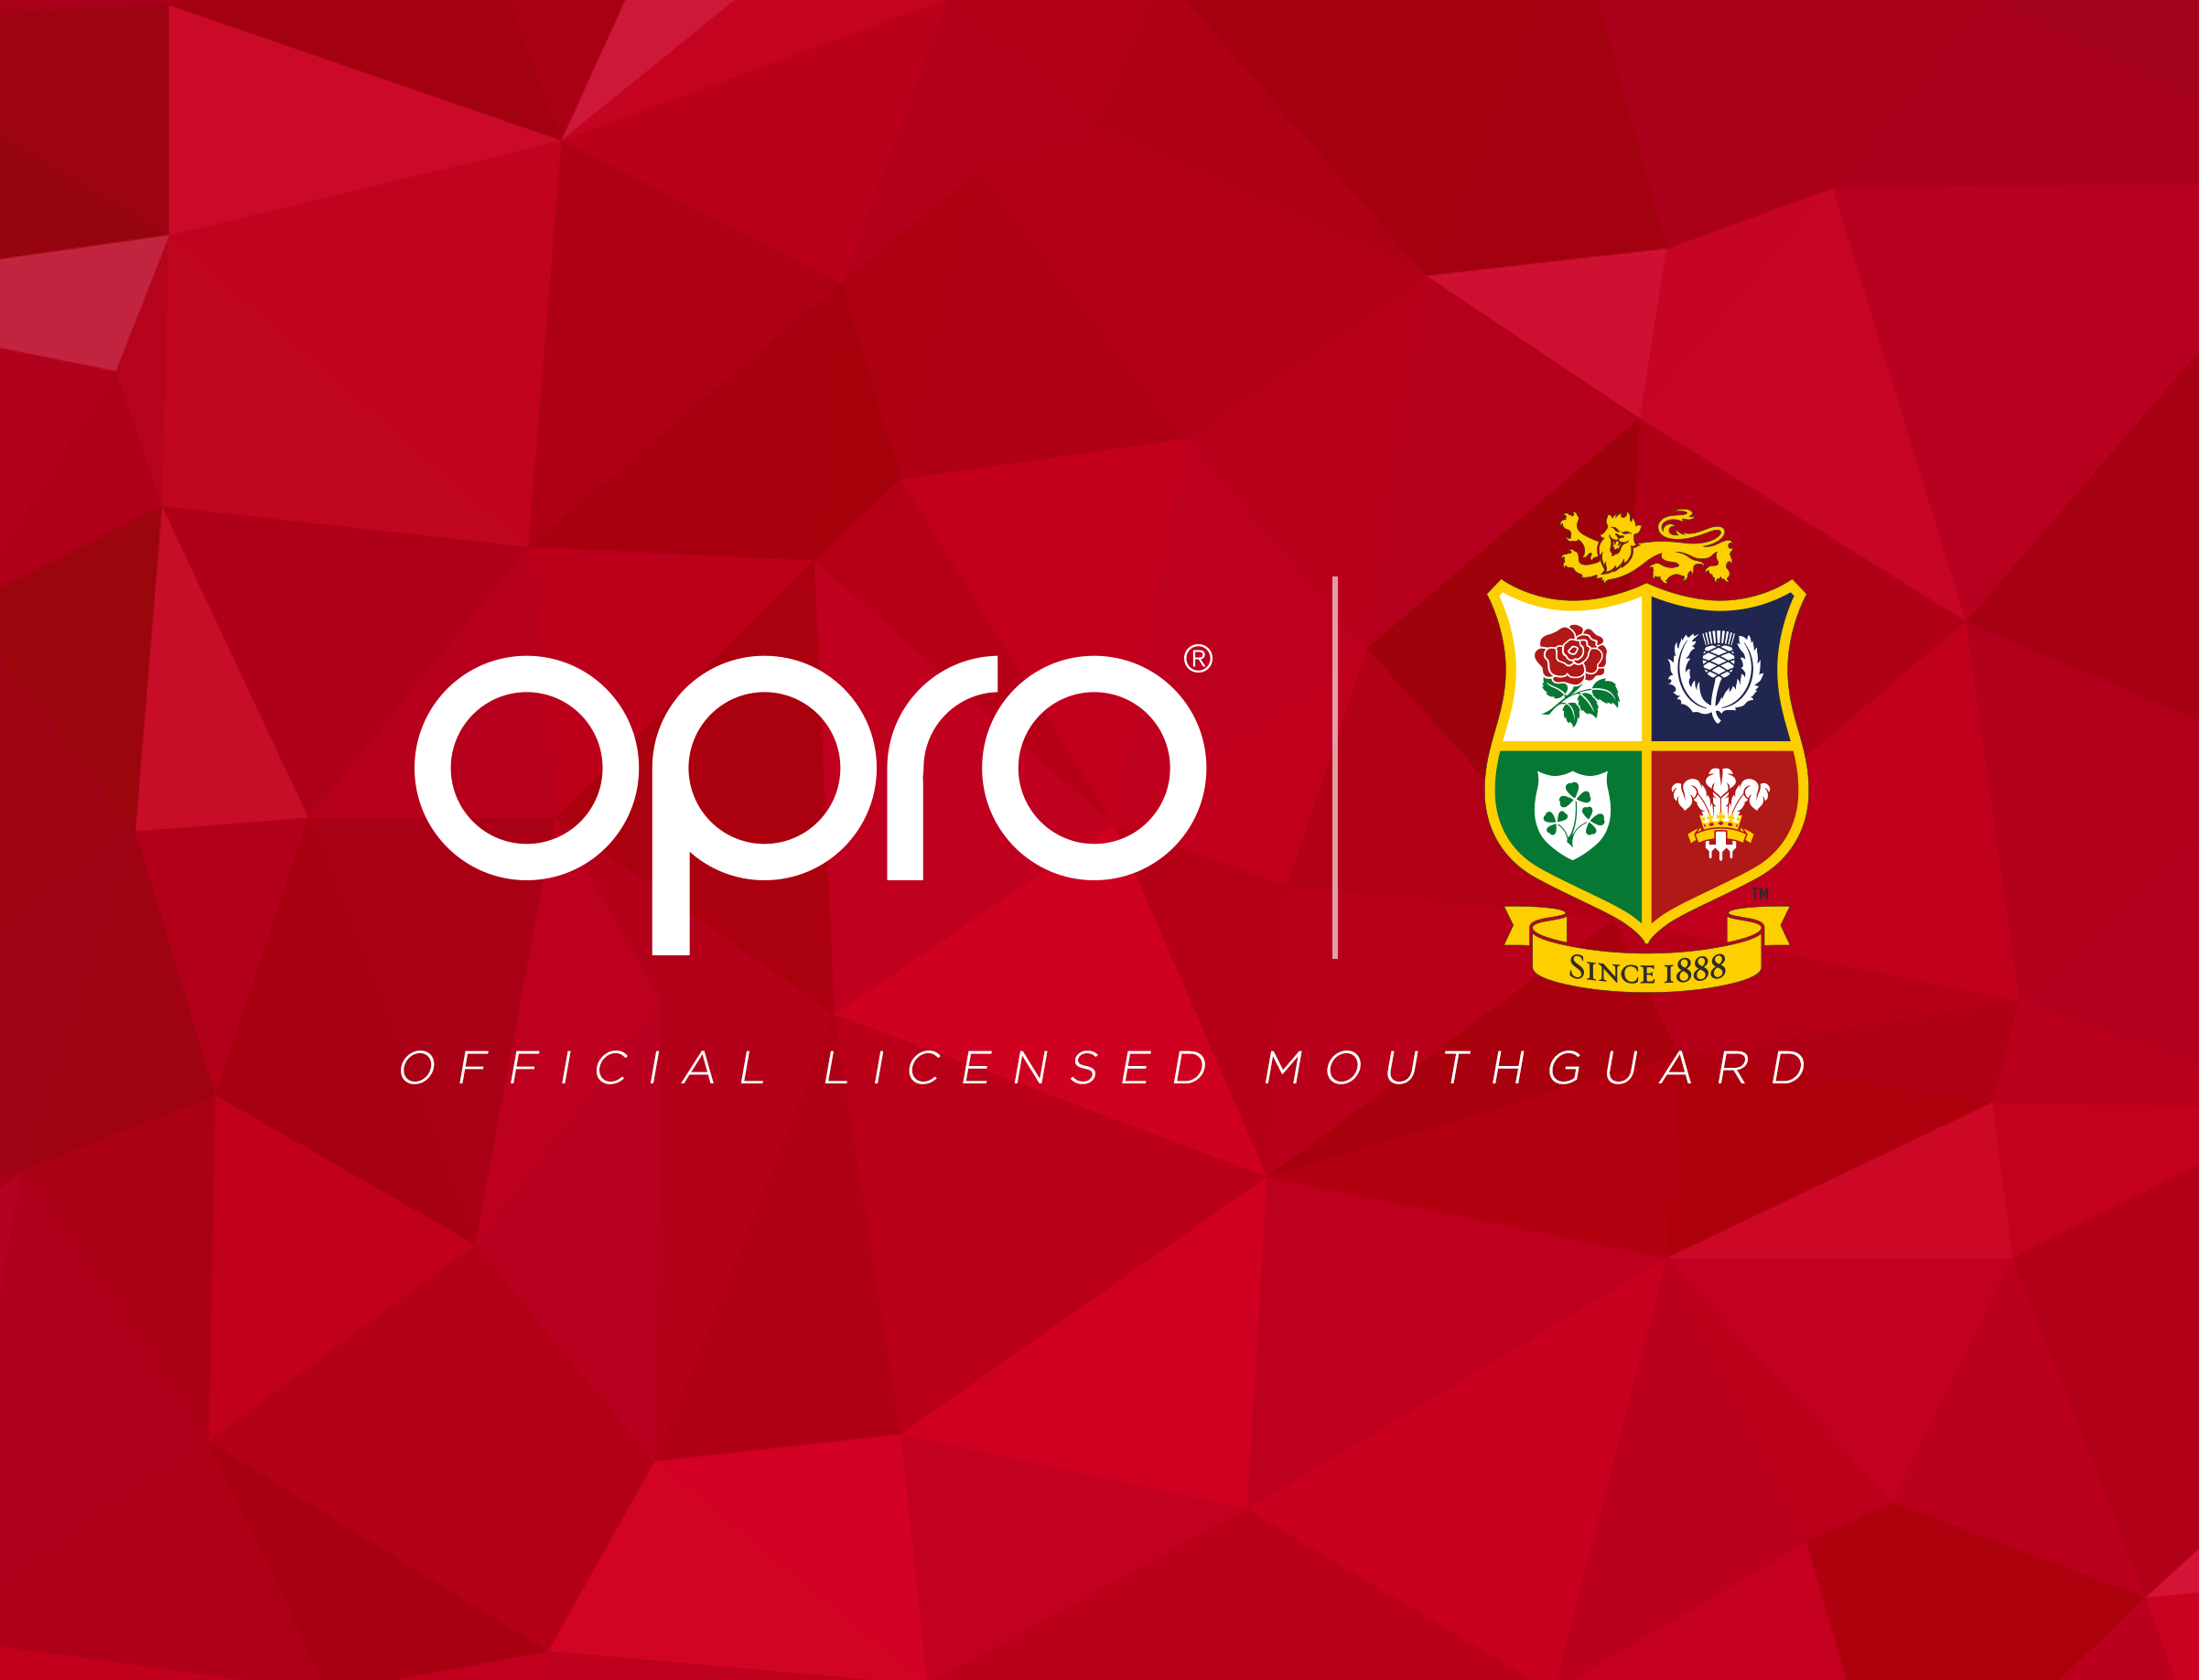 BRITISH & IRISH LIONS PARTNER WITH OPRO MOUTHGUARDS